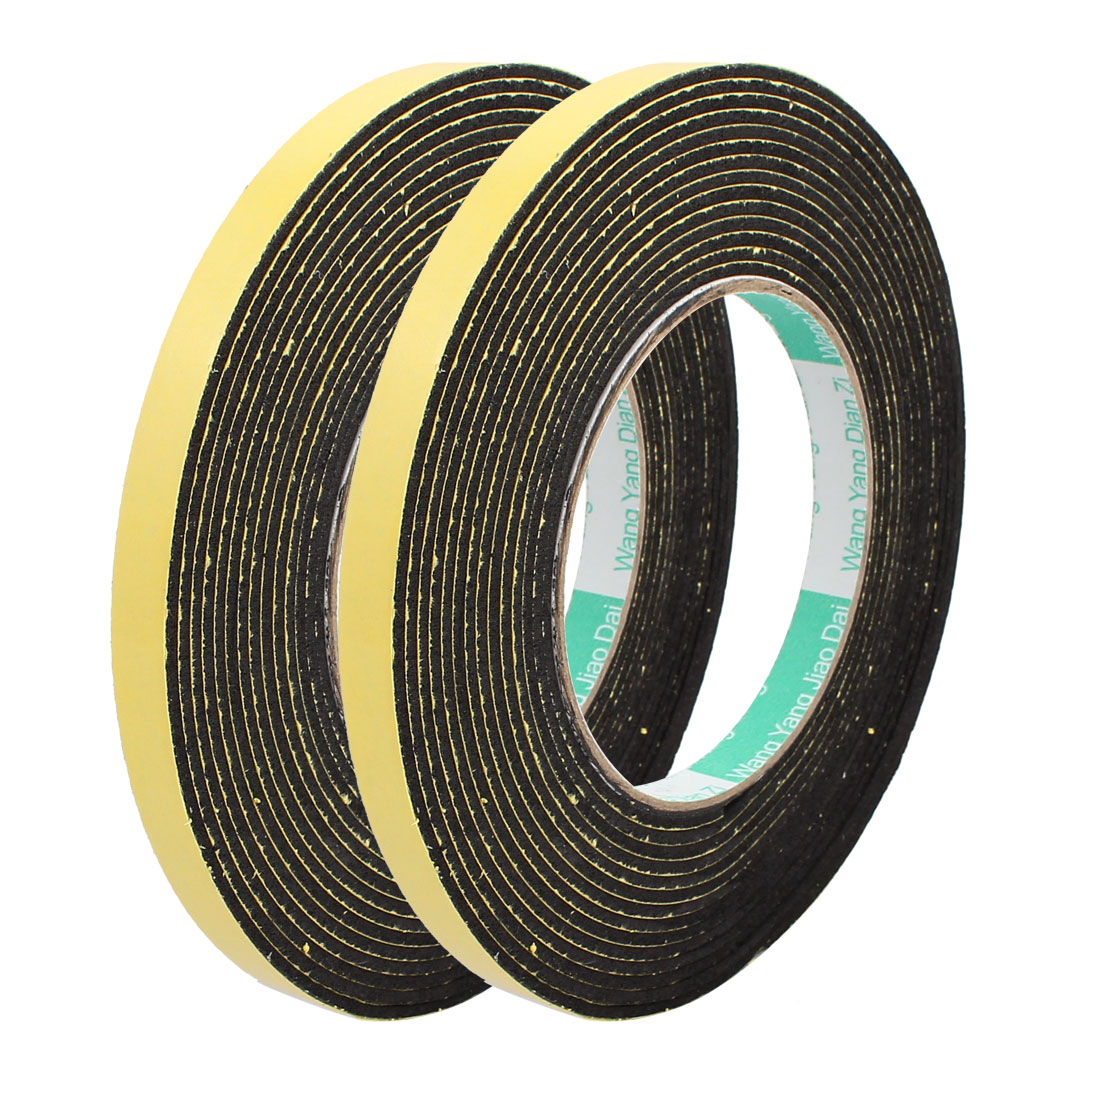 2Pcs 10mm Width 2mm Thick Single Sided Sealing Shockproof Sponge Tape 5m Length